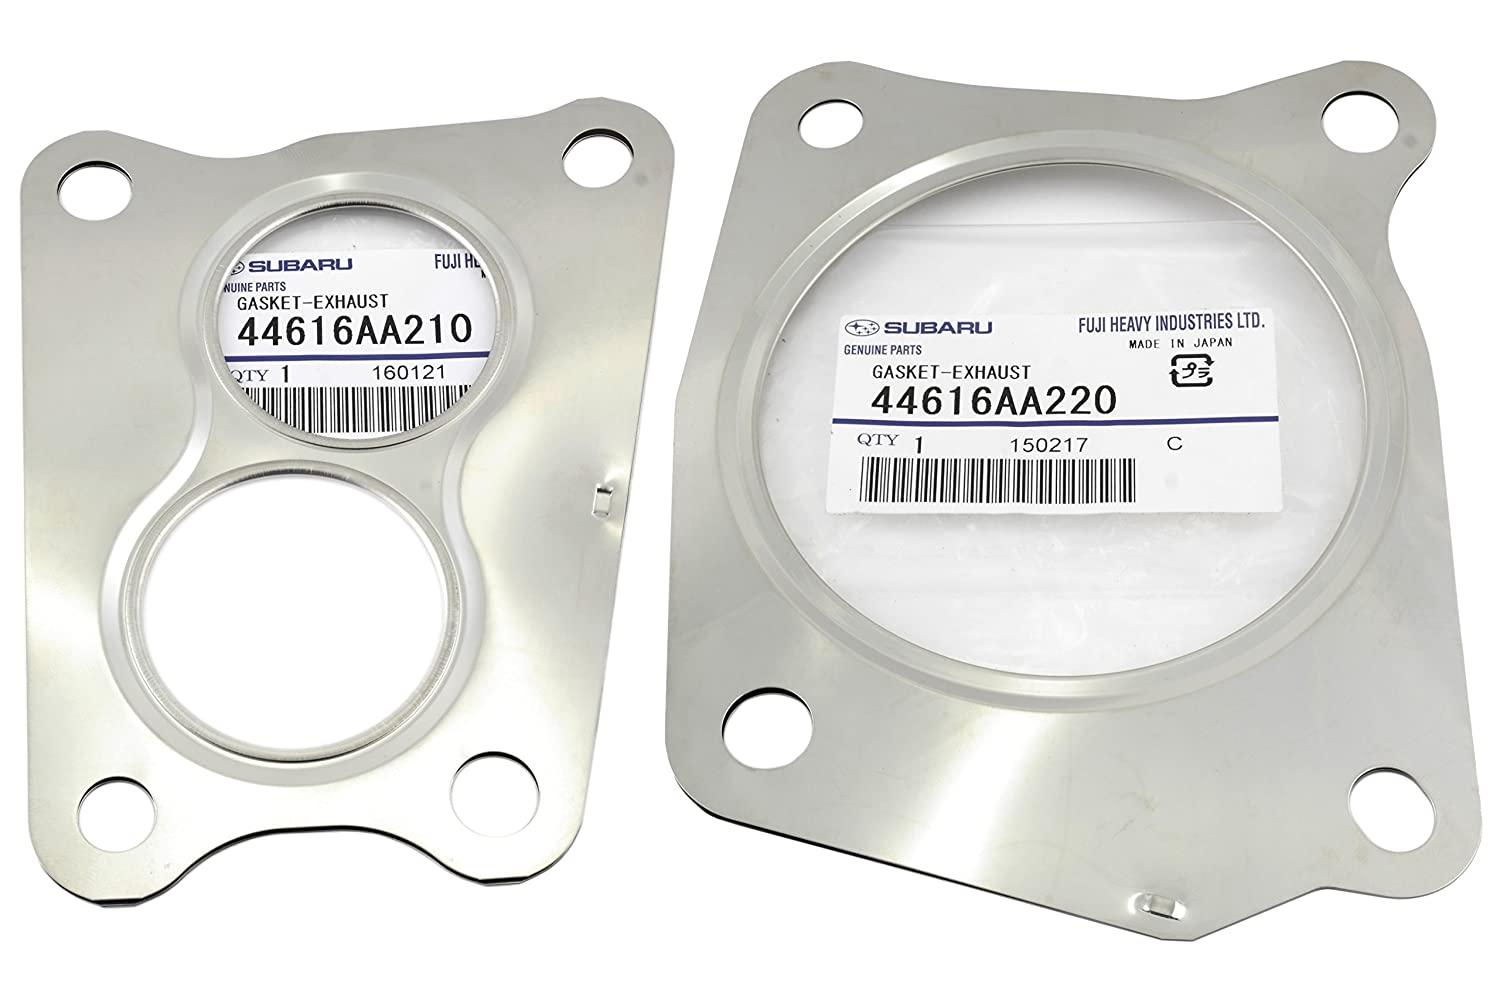 14-17 Subaru Turbo Inlet Outlet Gaskets WRX Forester OEM 44616AA210 & 44616AA220